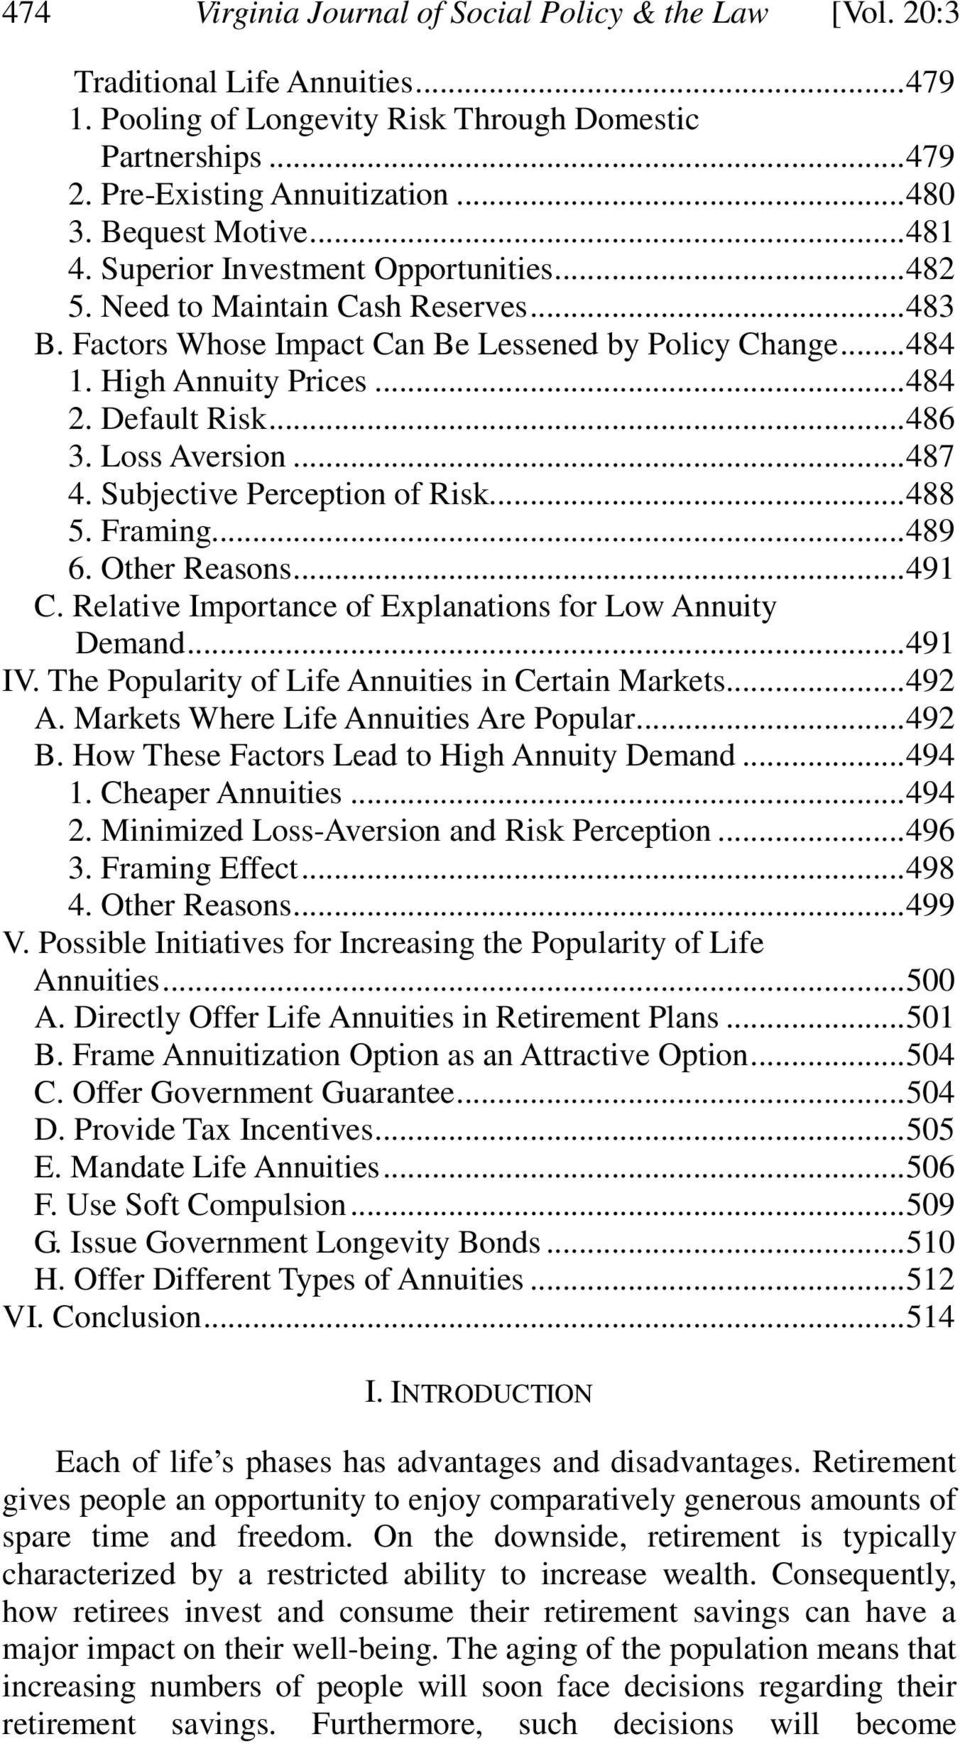 .. 484 2. Default Risk... 486 3. Loss Aversion... 487 4. Subjective Perception of Risk... 488 5. Framing... 489 6. Other Reasons... 491 C. Relative Importance of Explanations for Low Annuity Demand.